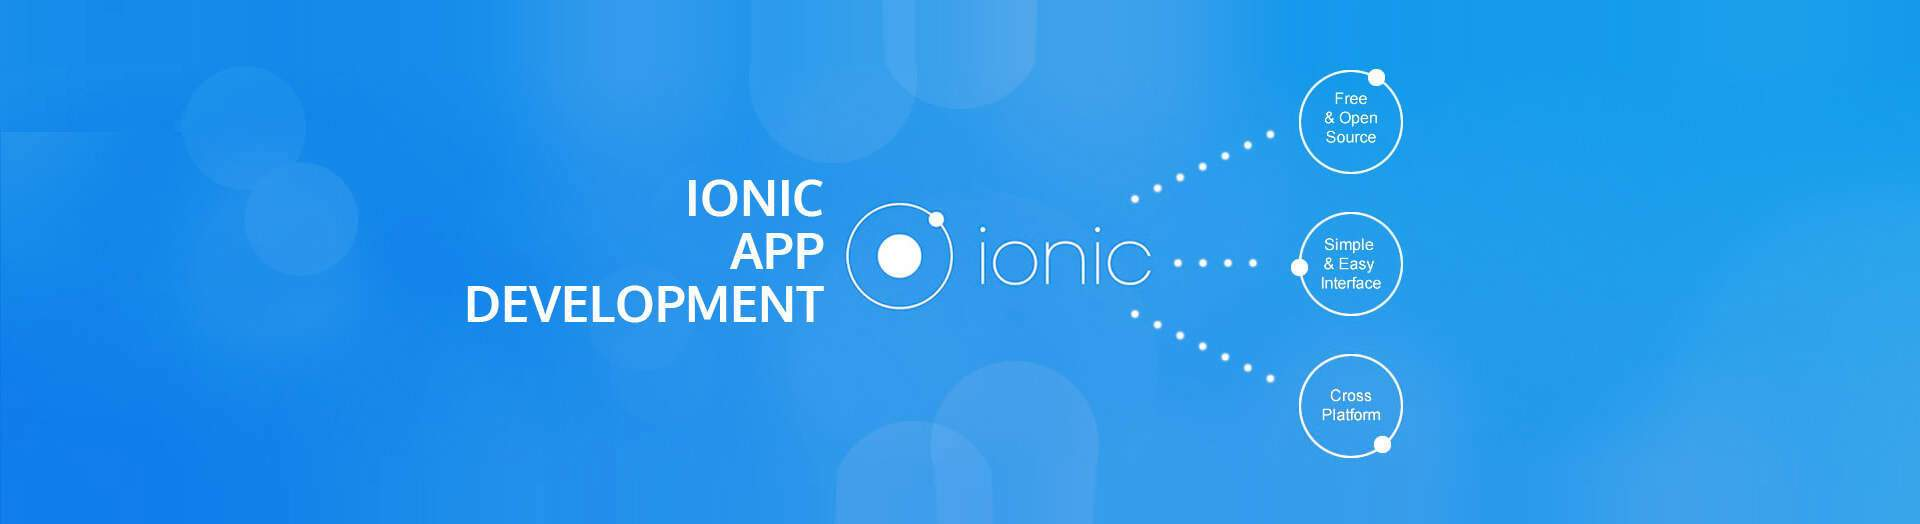 iconic-app-development